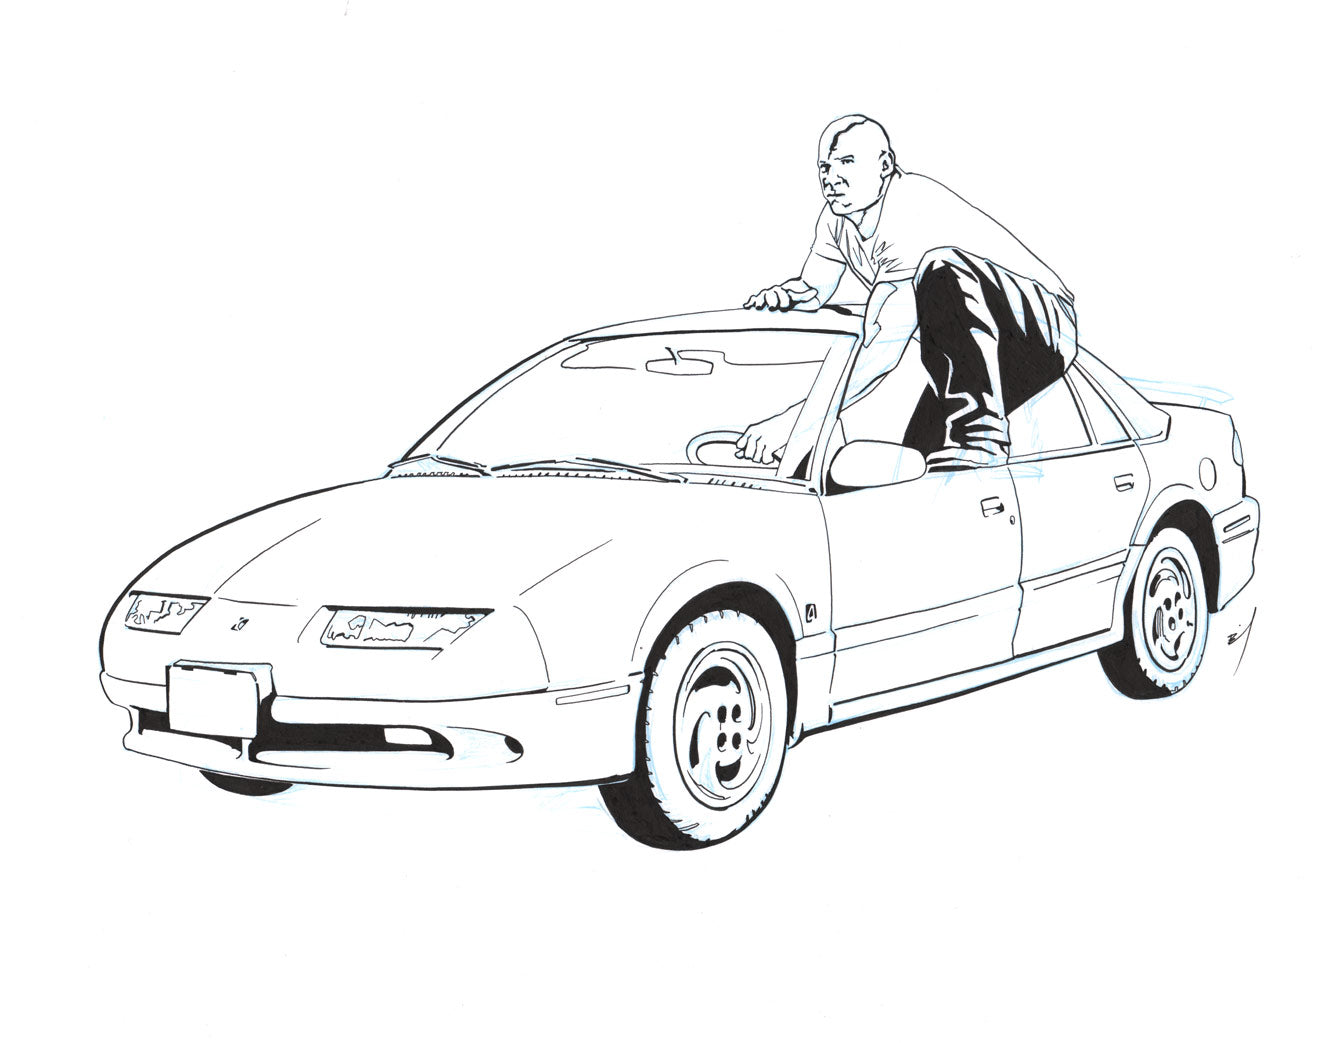 Vin Diesel driving a Saturn original ink drawing